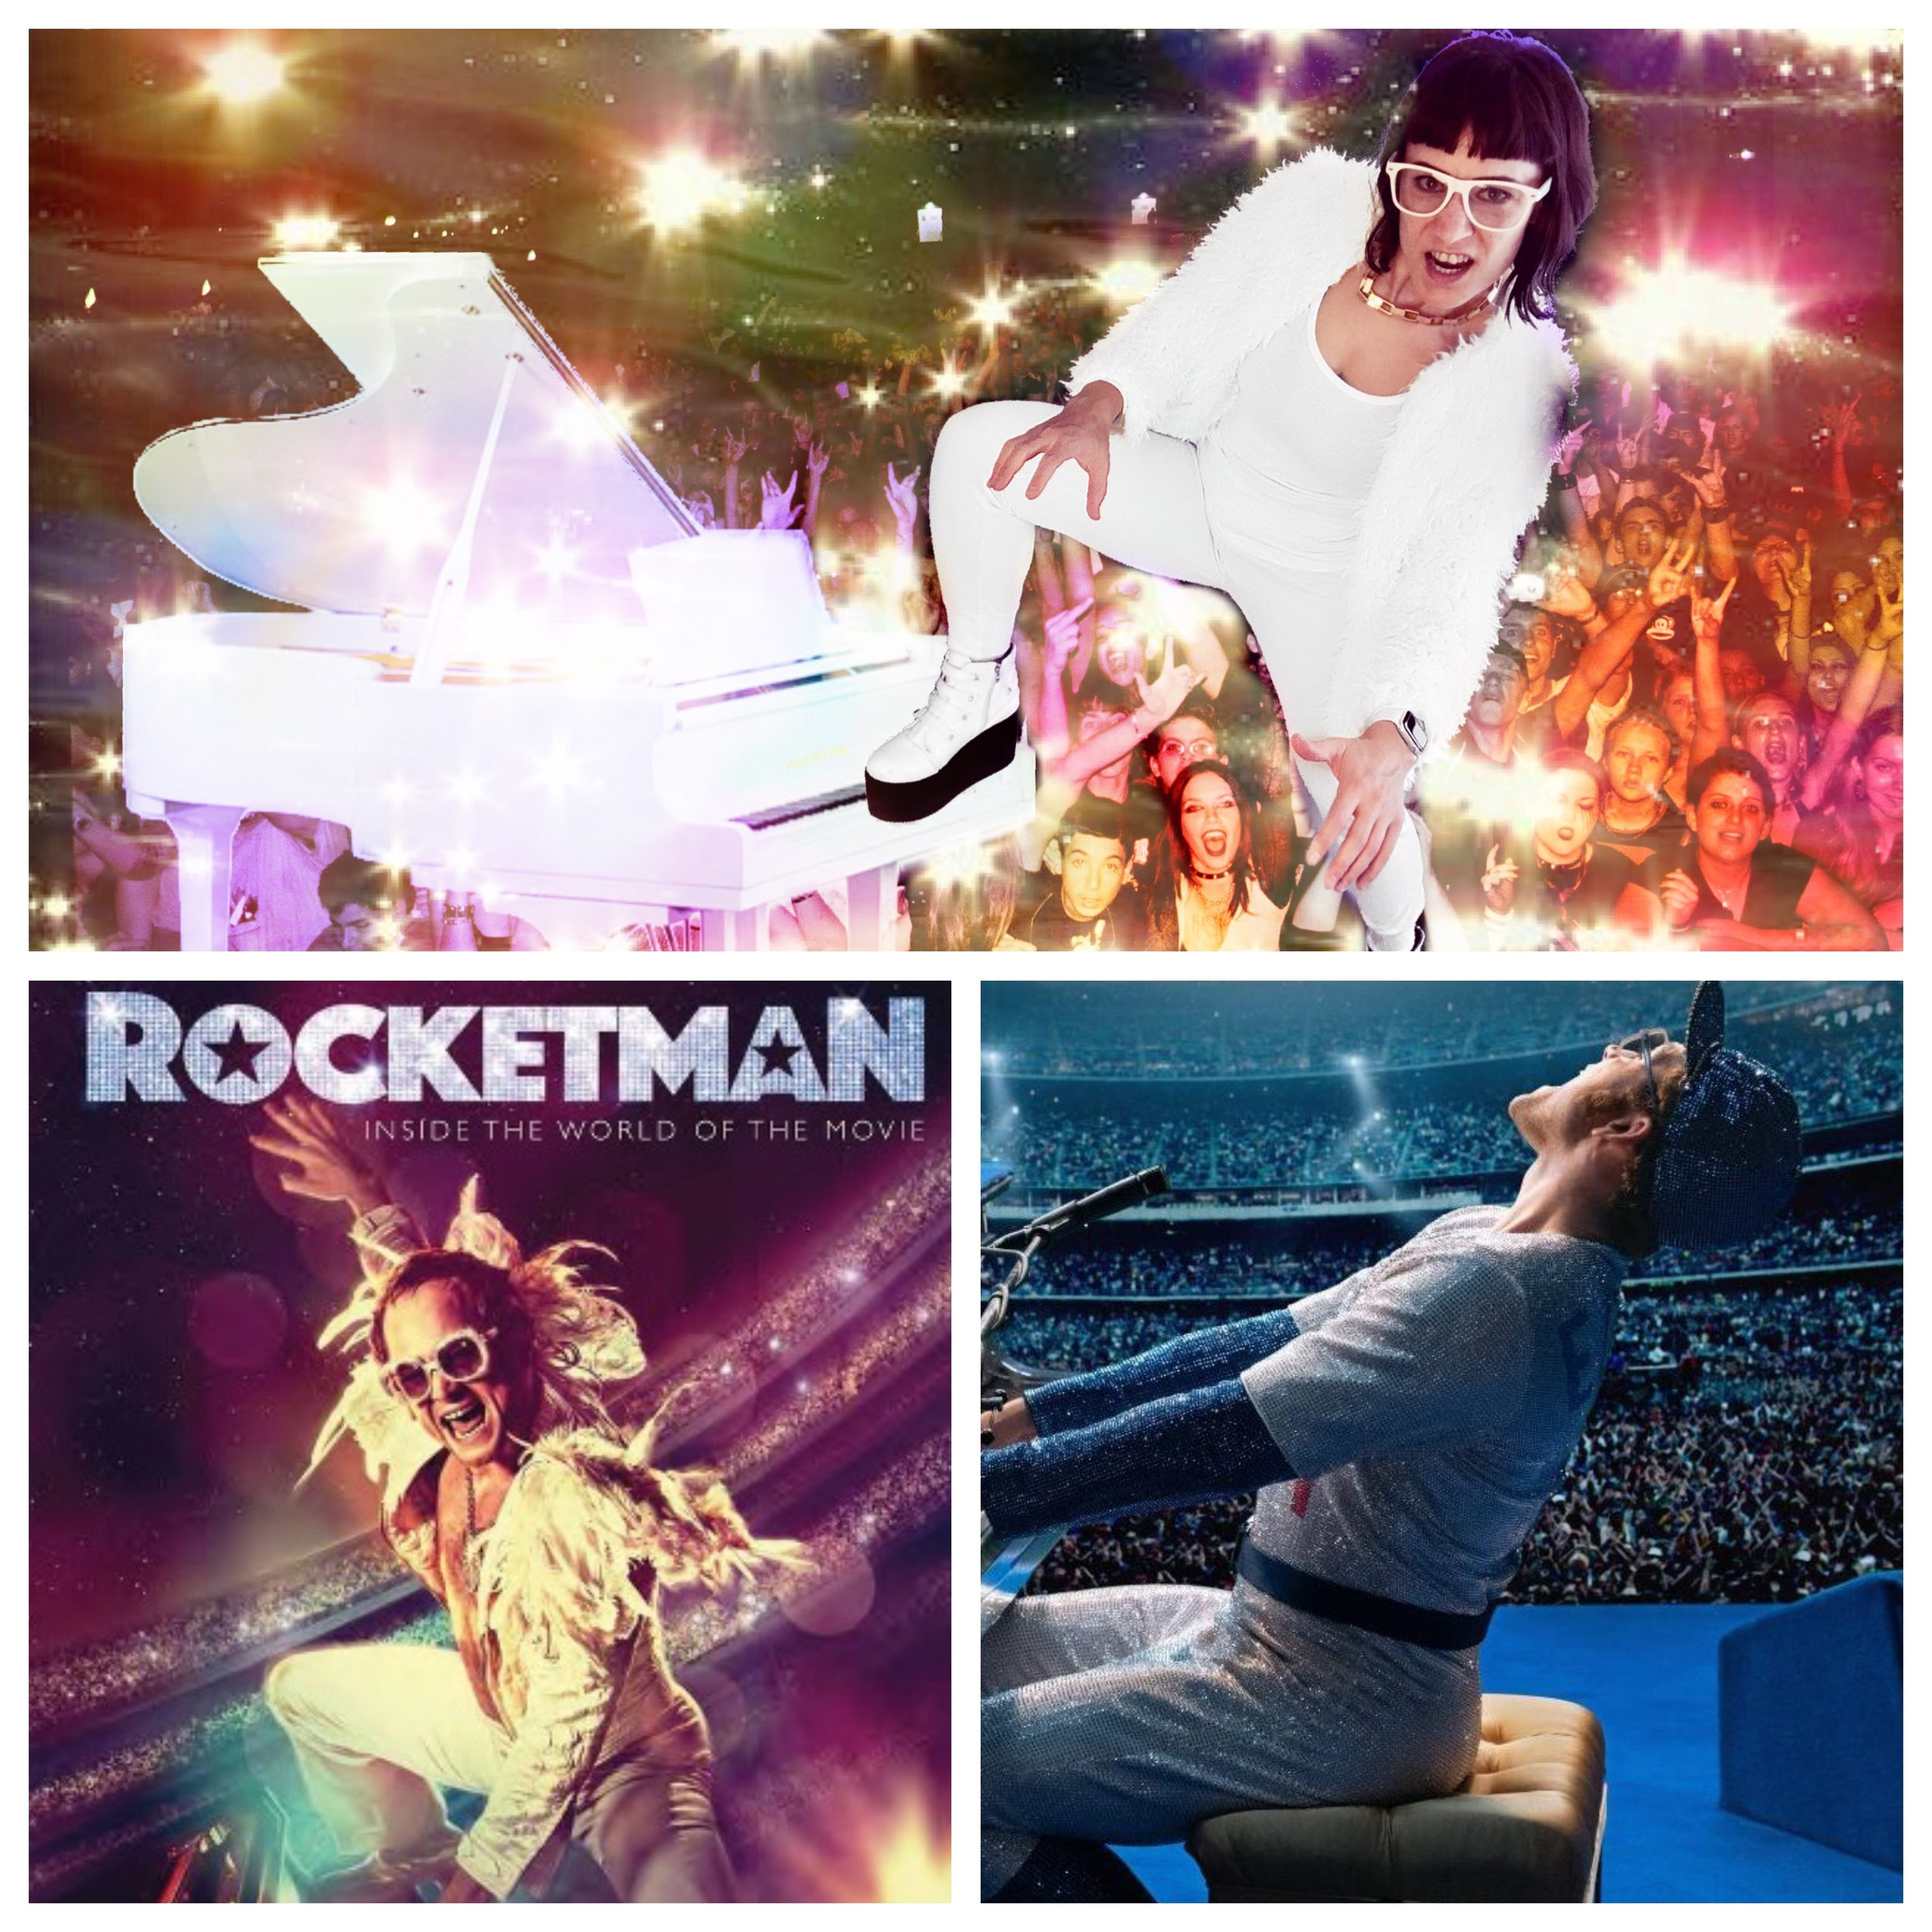 Rocketman Piano Collage.JPG